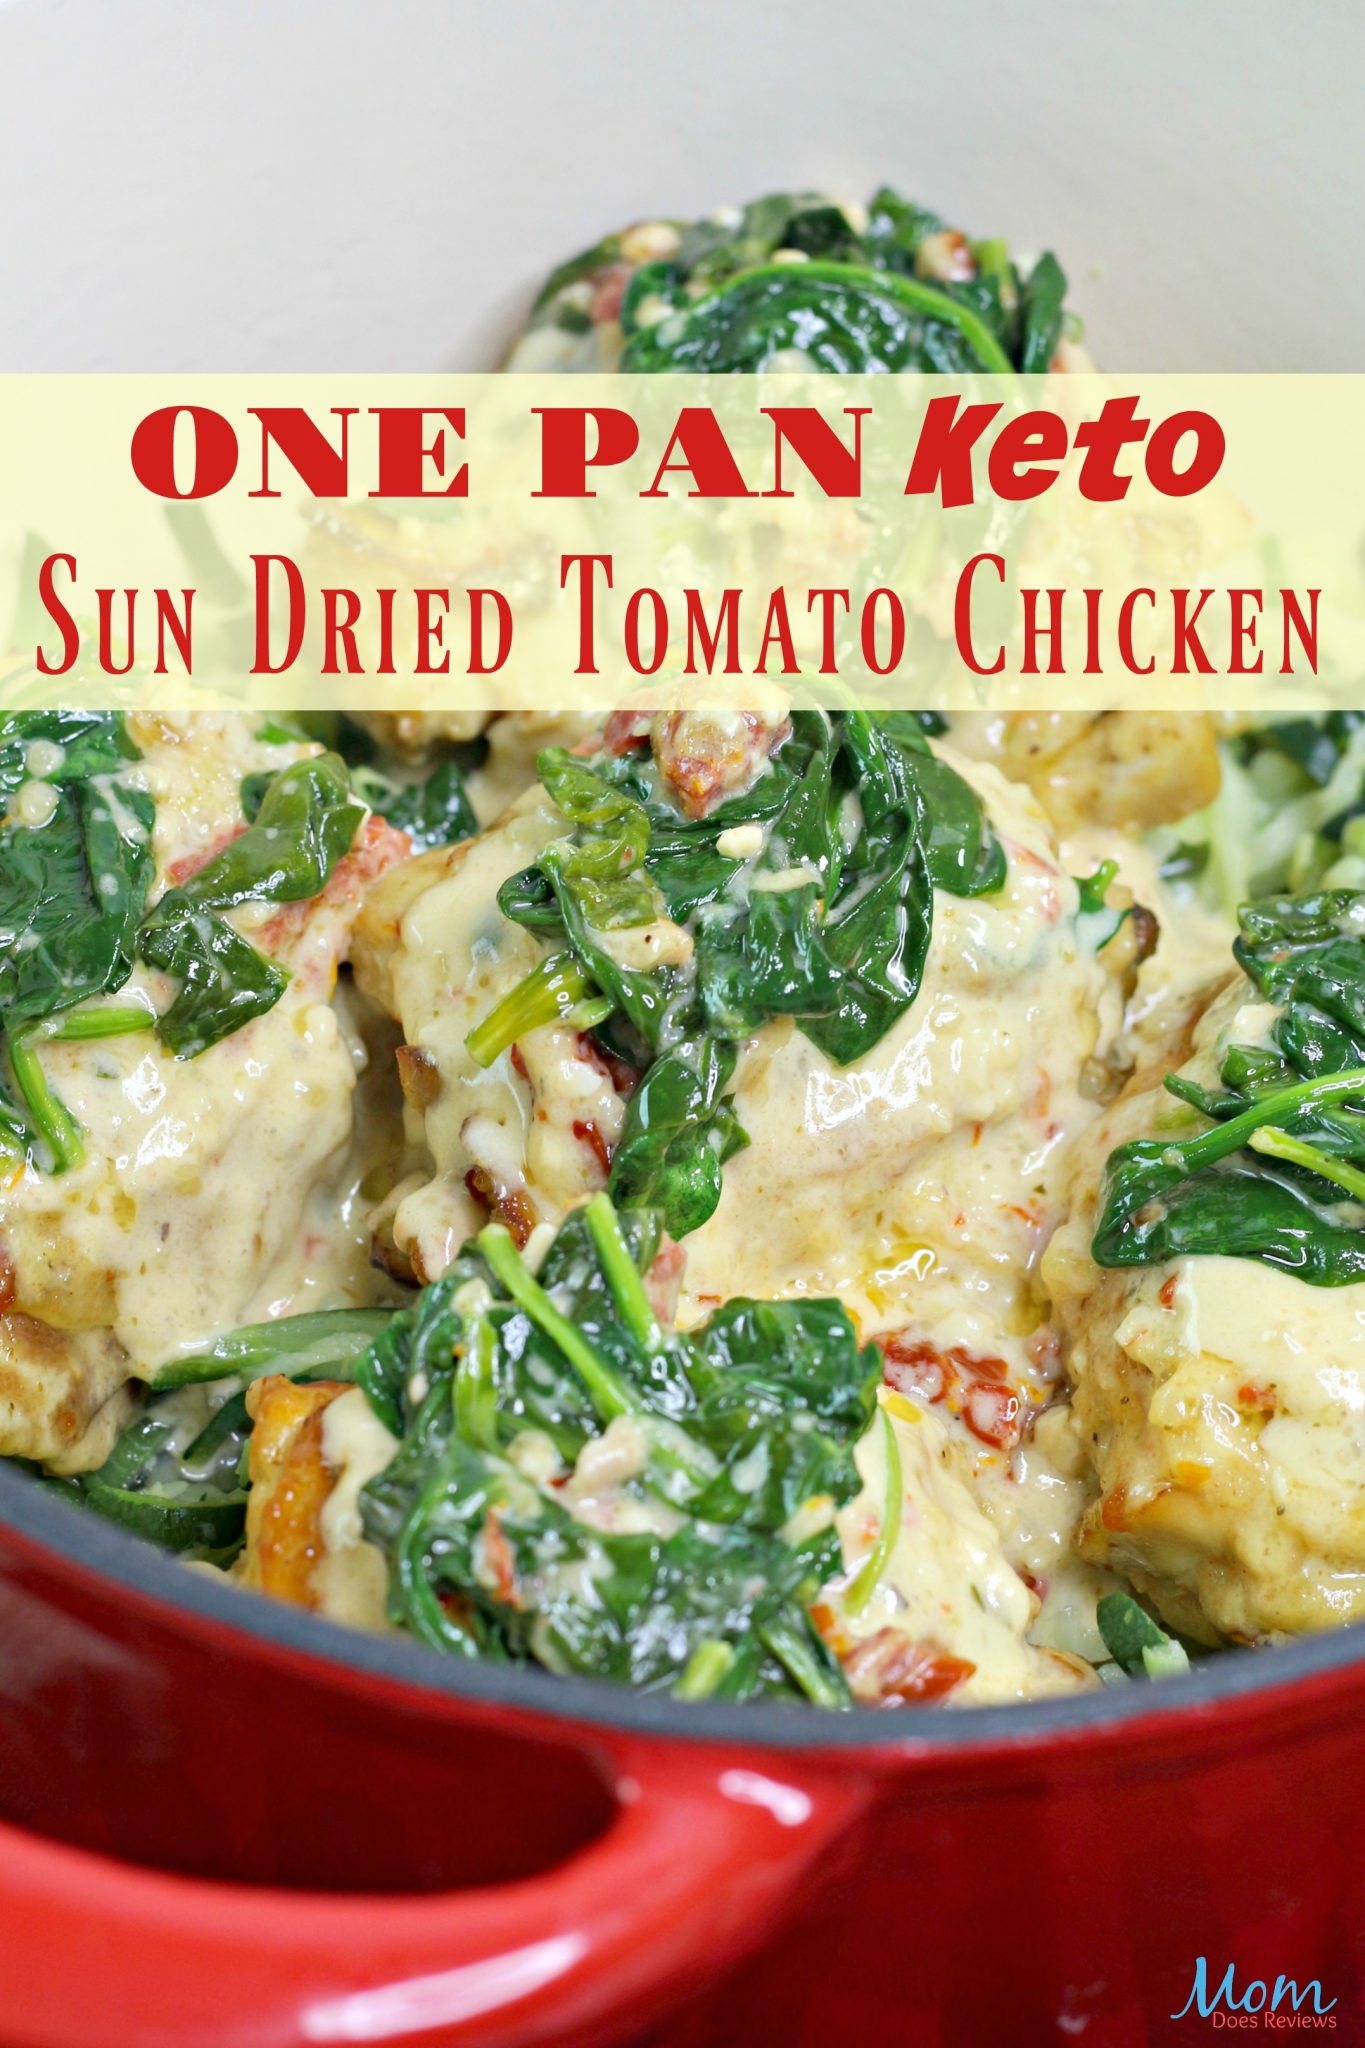 One Pan Keto Sun Dried Tomato Chicken Recipe #easyrecipe #keto #ketodiet #chicken #getinmybelly #onepanrecipe